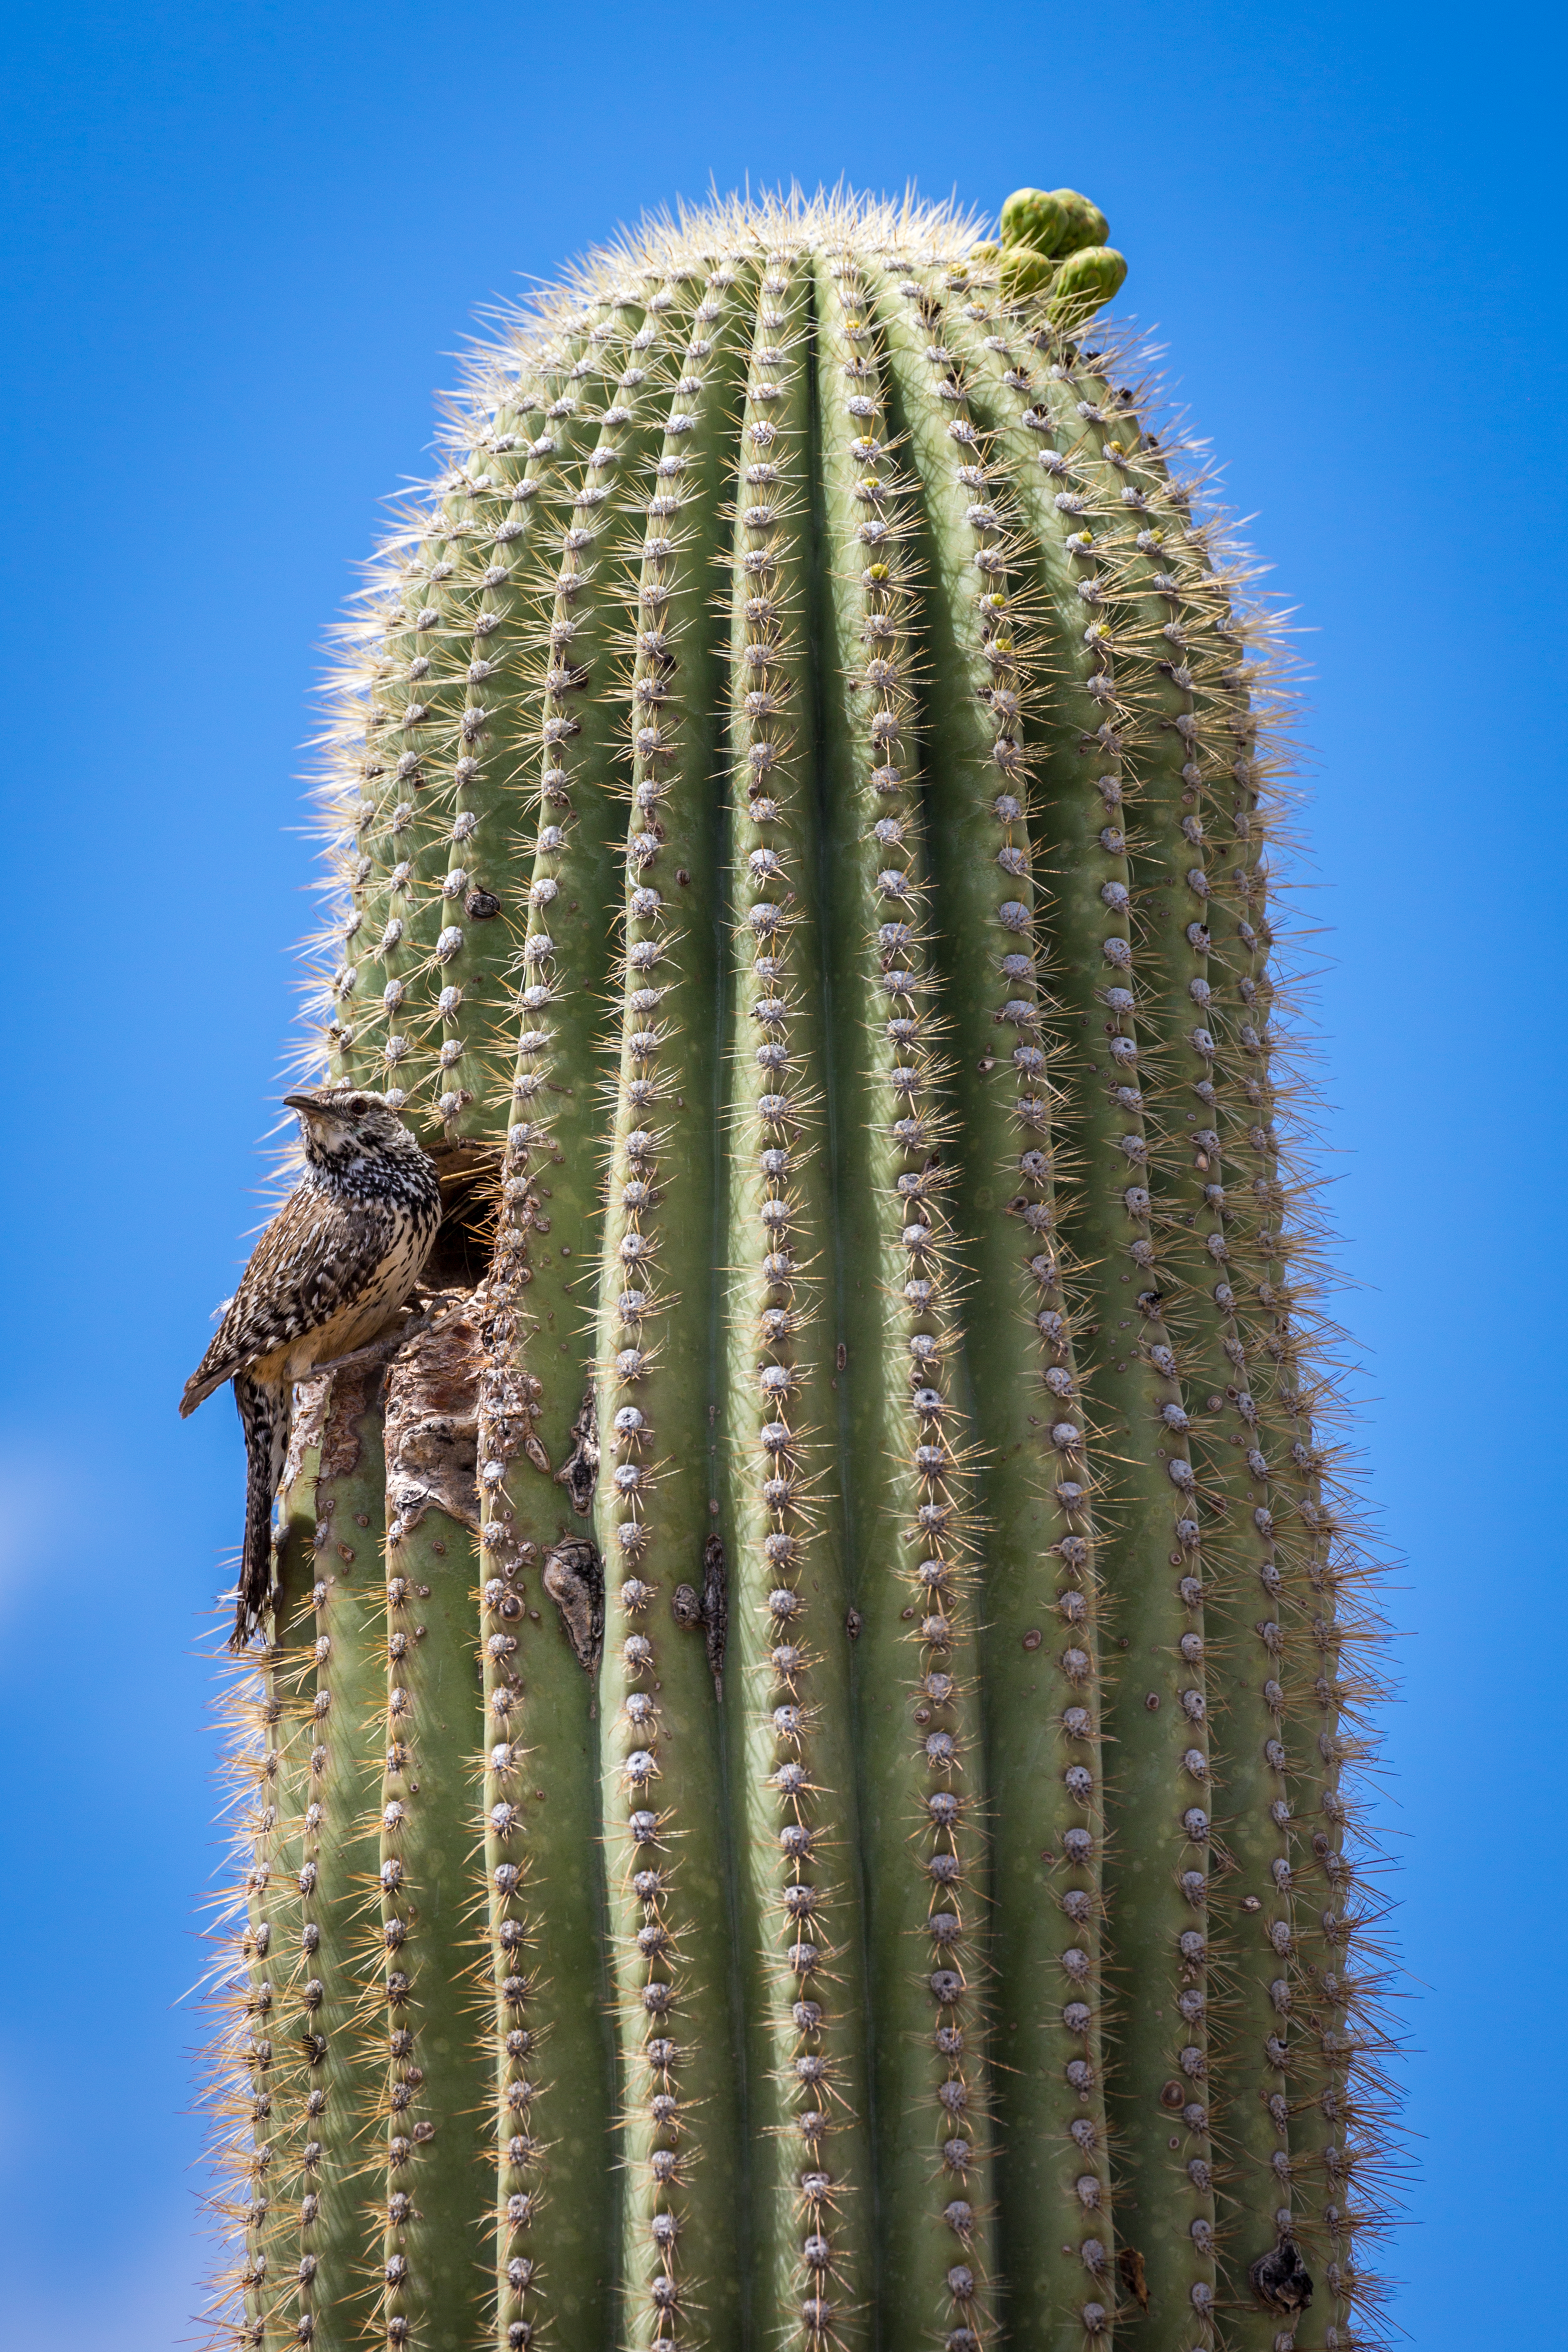 Saguaro Cactus, Saguaro National Park, Arizona, USA